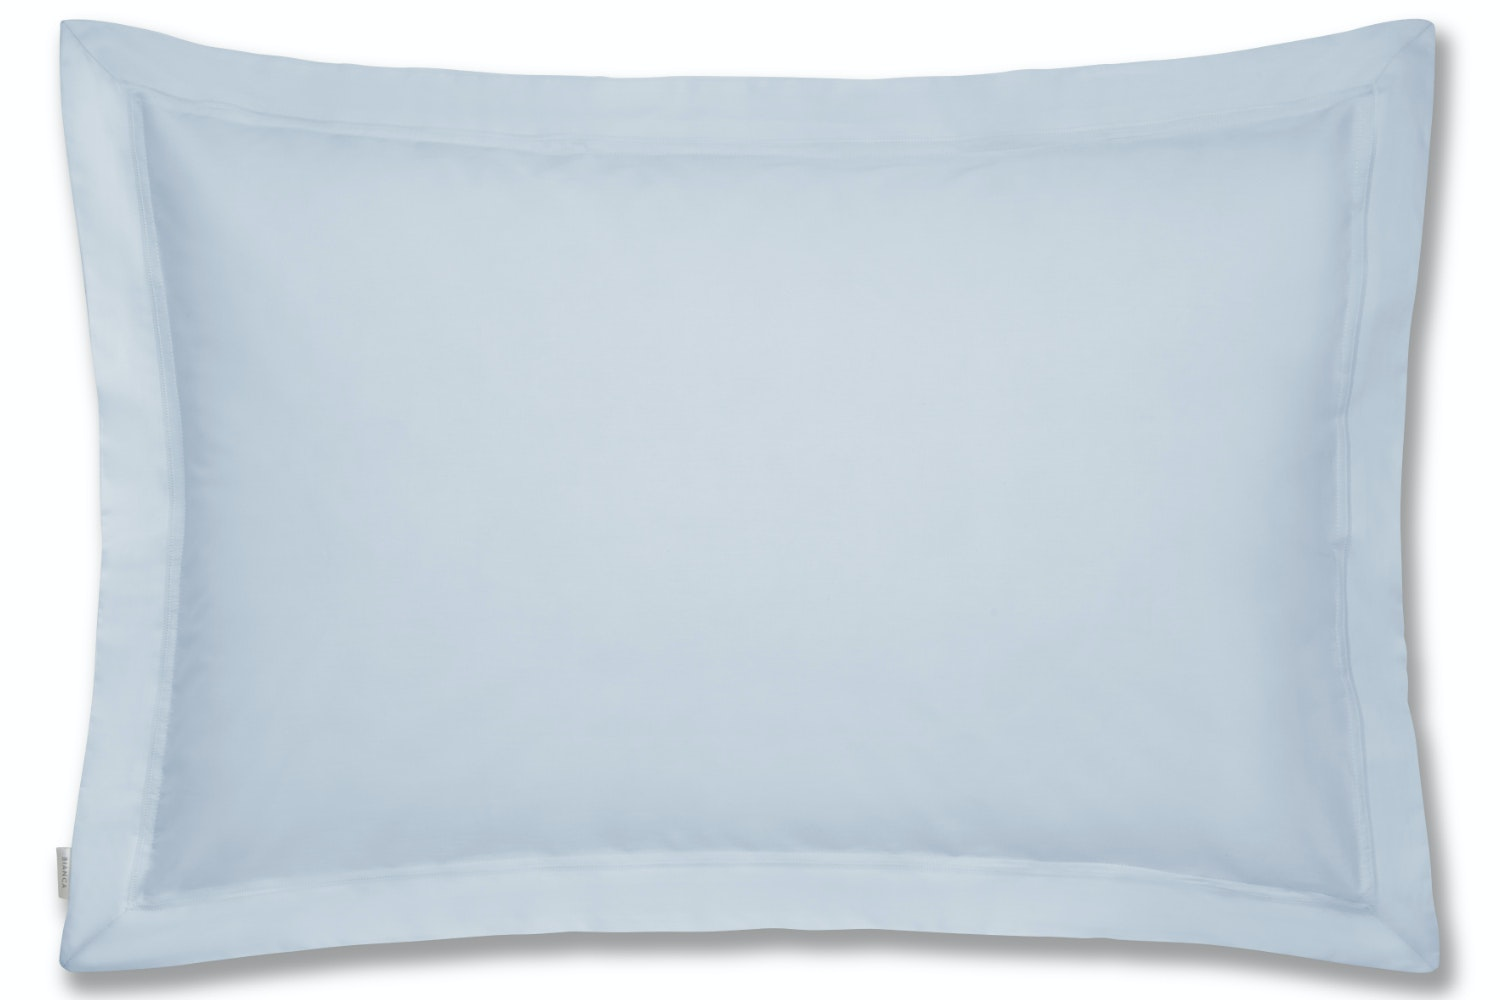 Cotton Soft Oxford Pillowcase | Blue